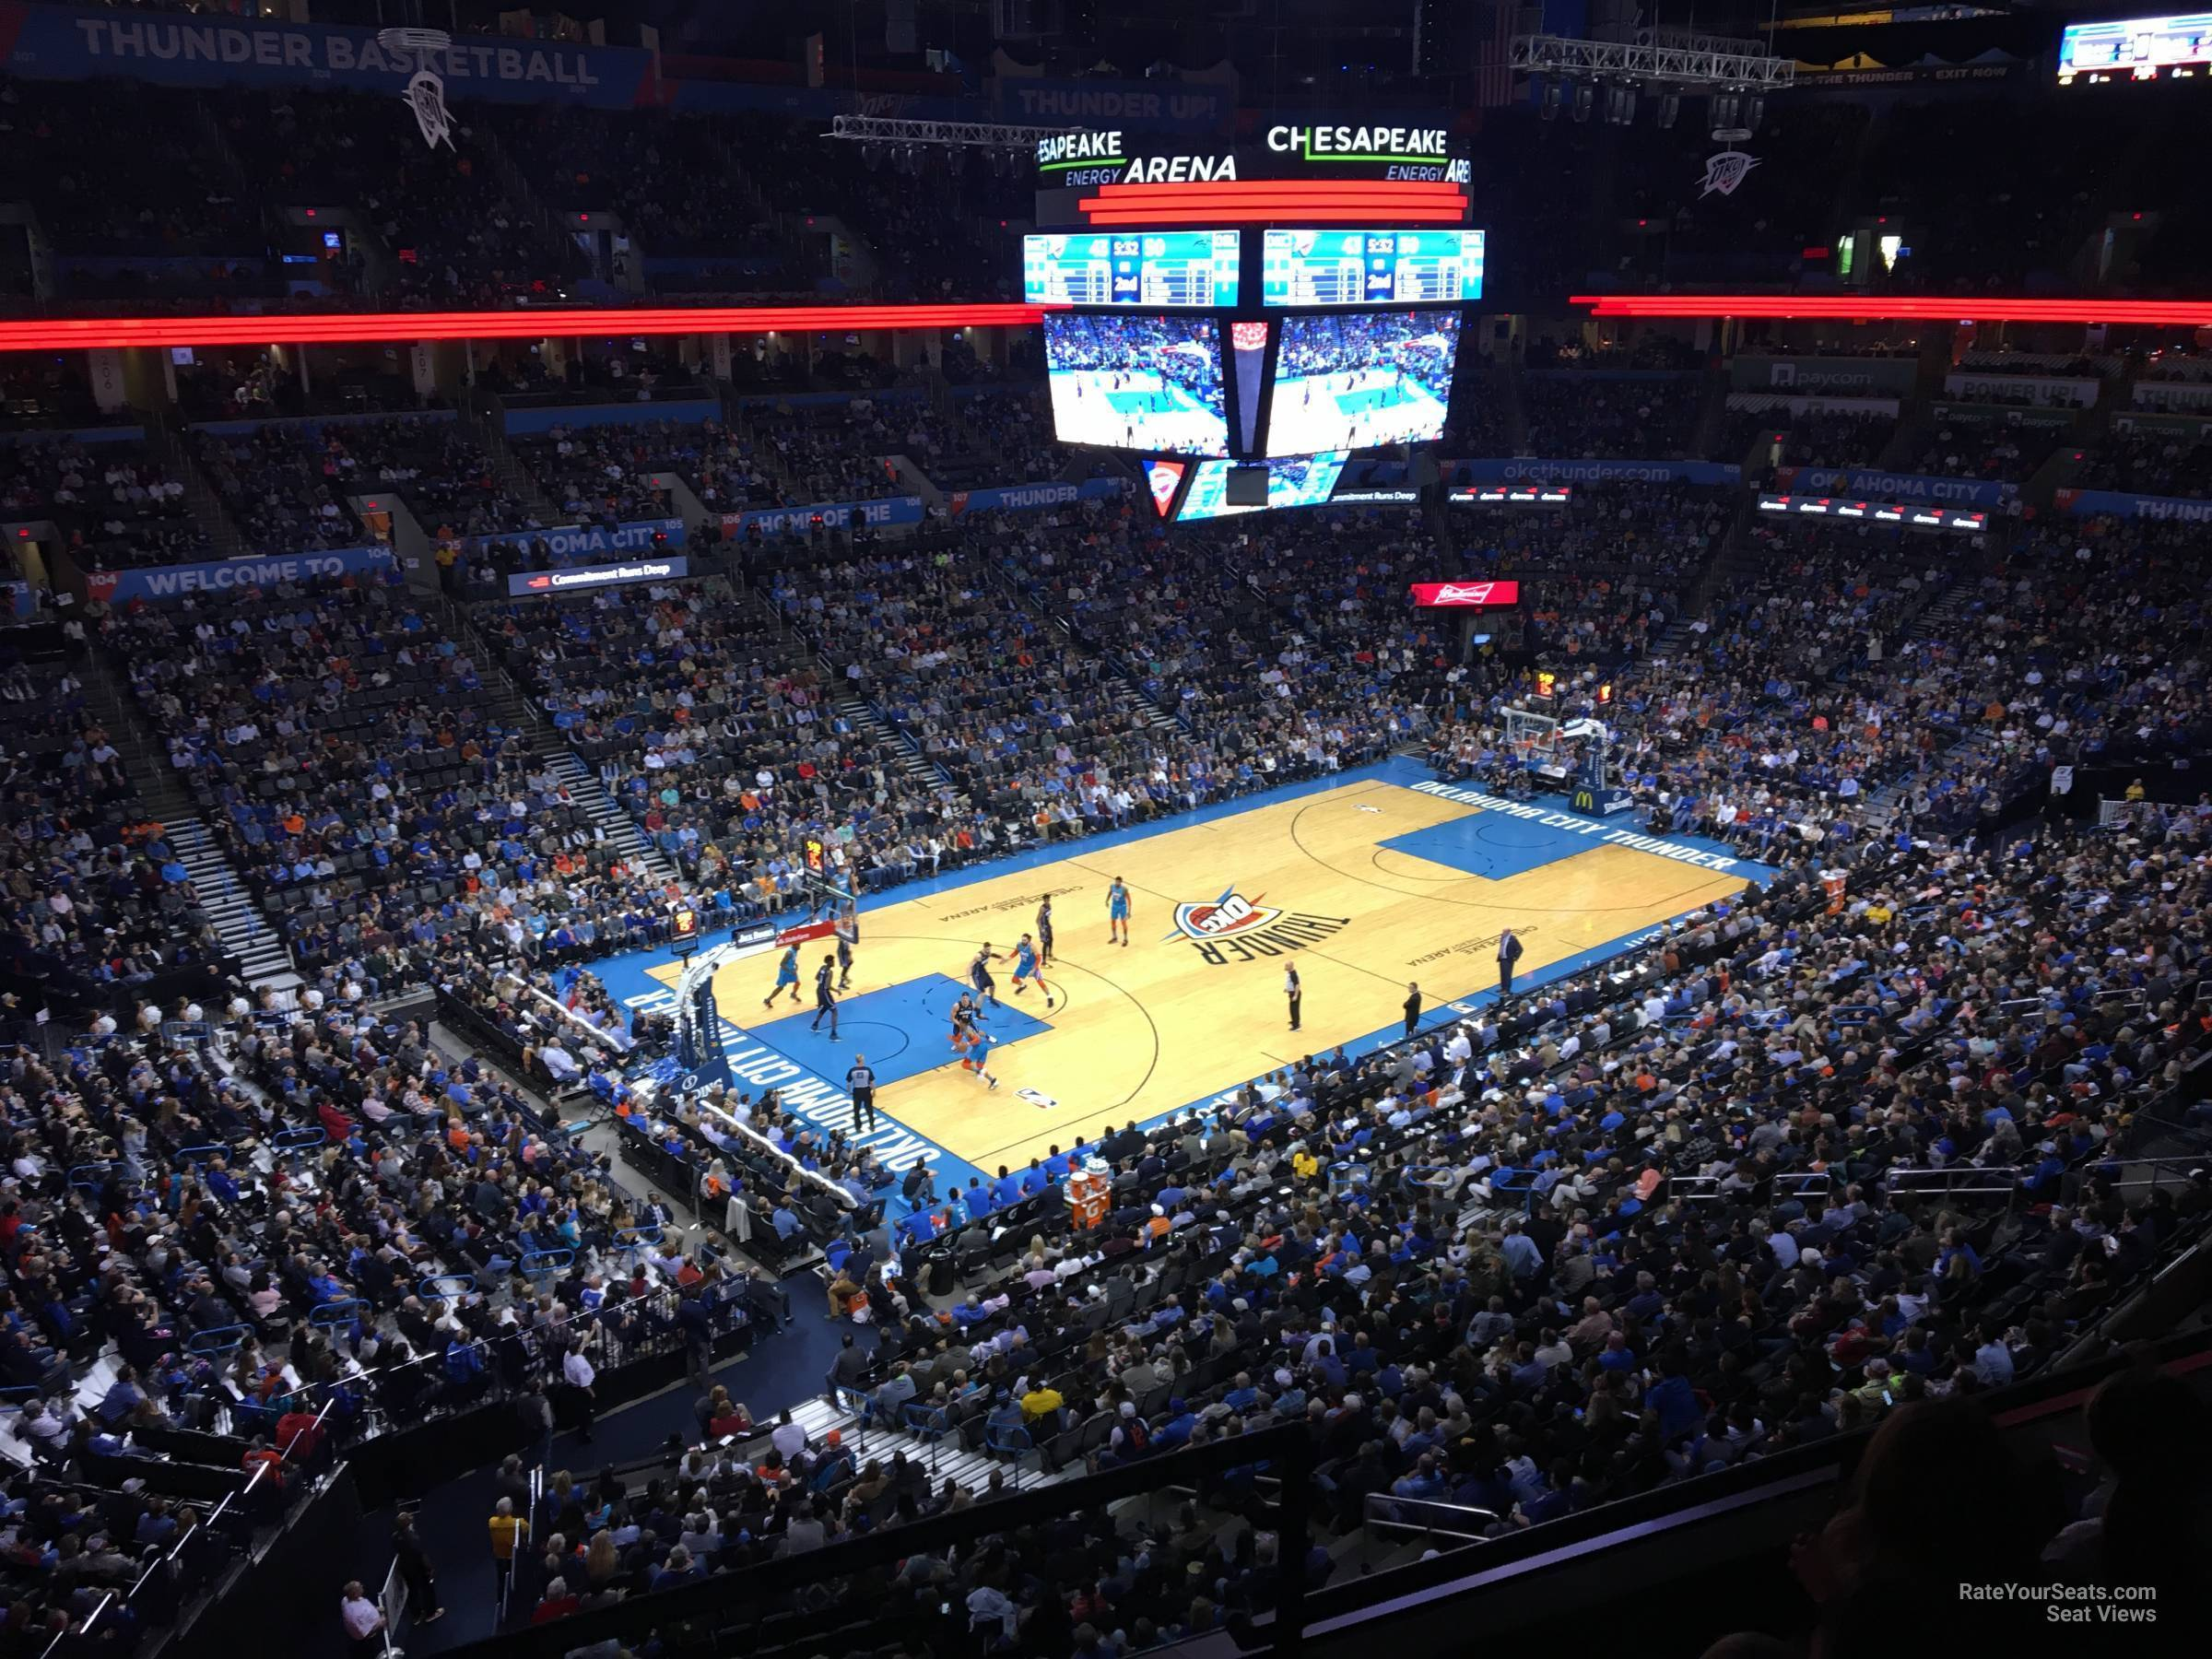 Seat View for Chesapeake Energy Arena Section 327, Row A